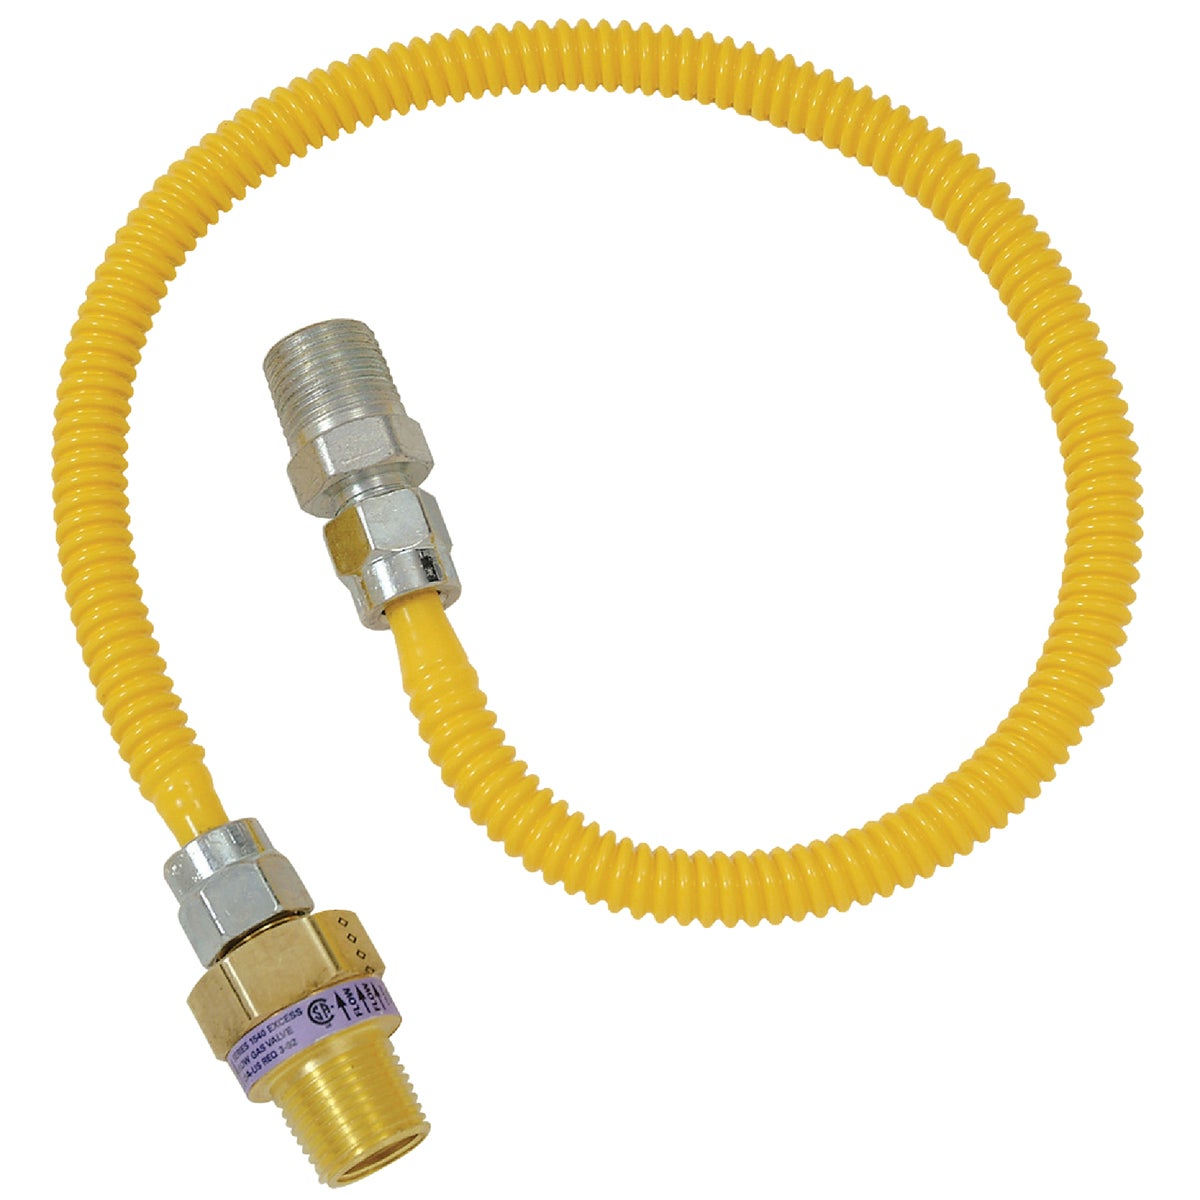 1/2X3/8-36 GAS CONNECTOR - CSSL44E-36P by Brass Craft